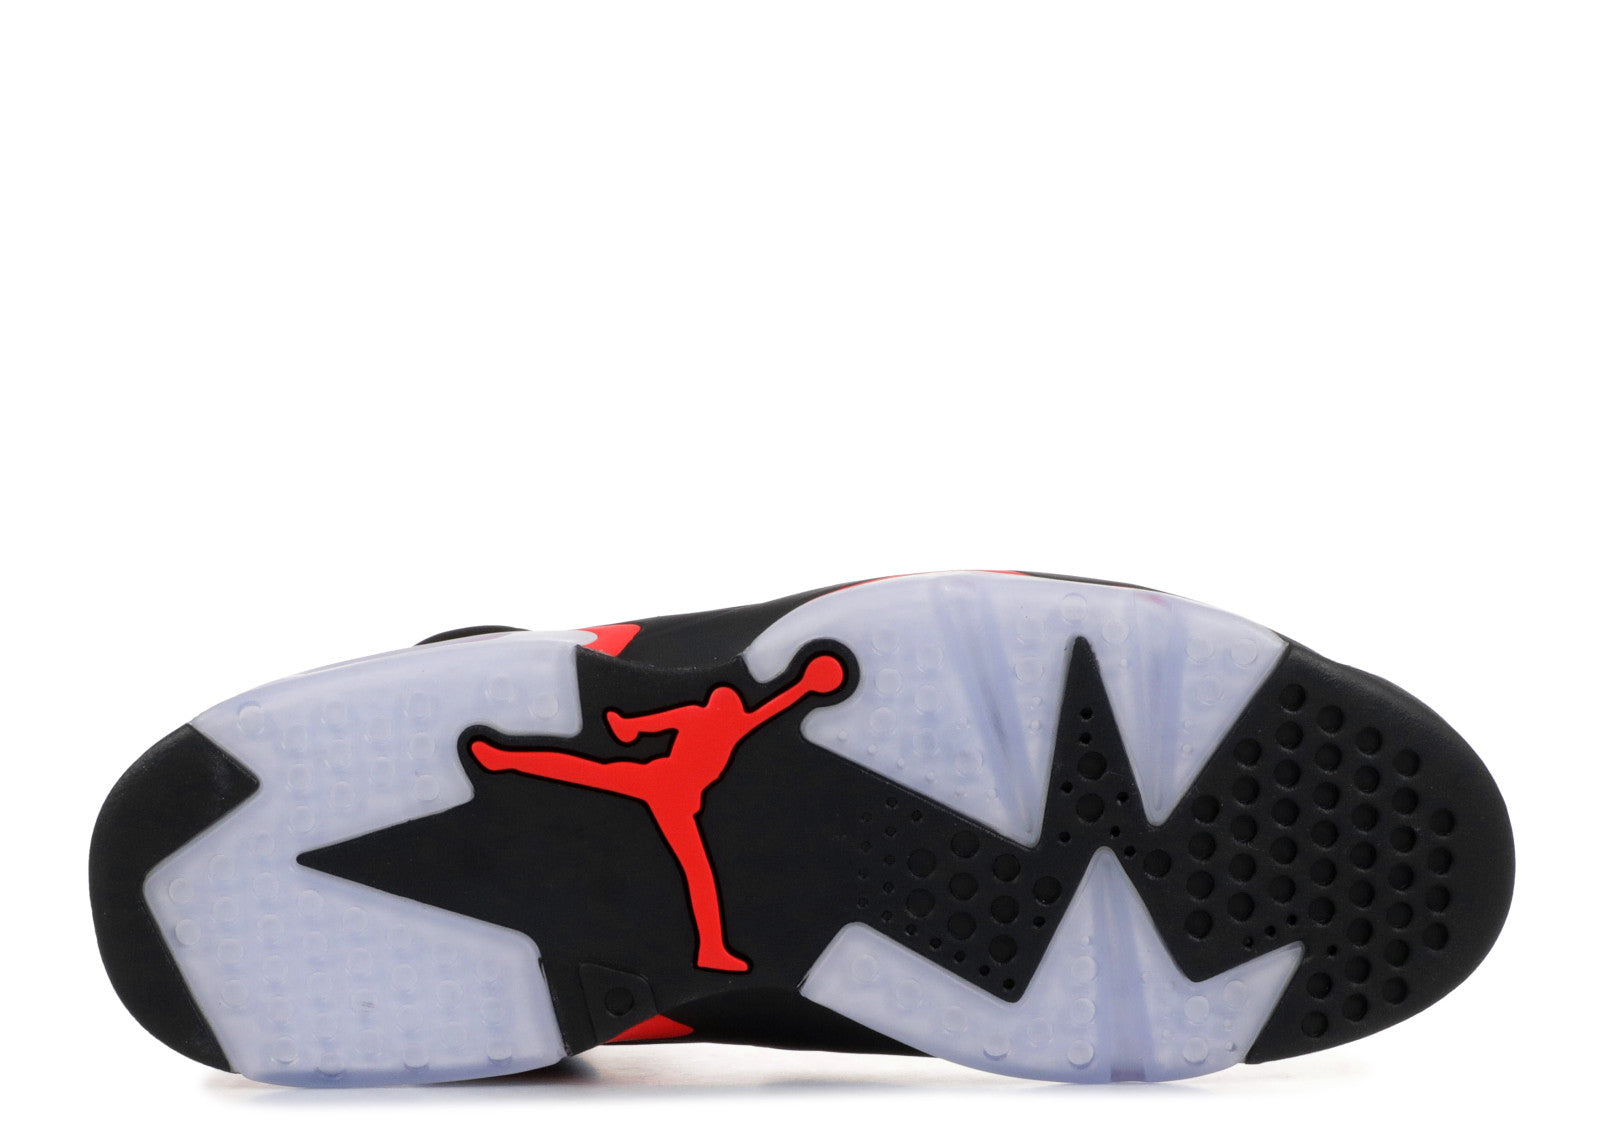 new style 30e72 db7ce Air Jordan Retro 6 GS Youth